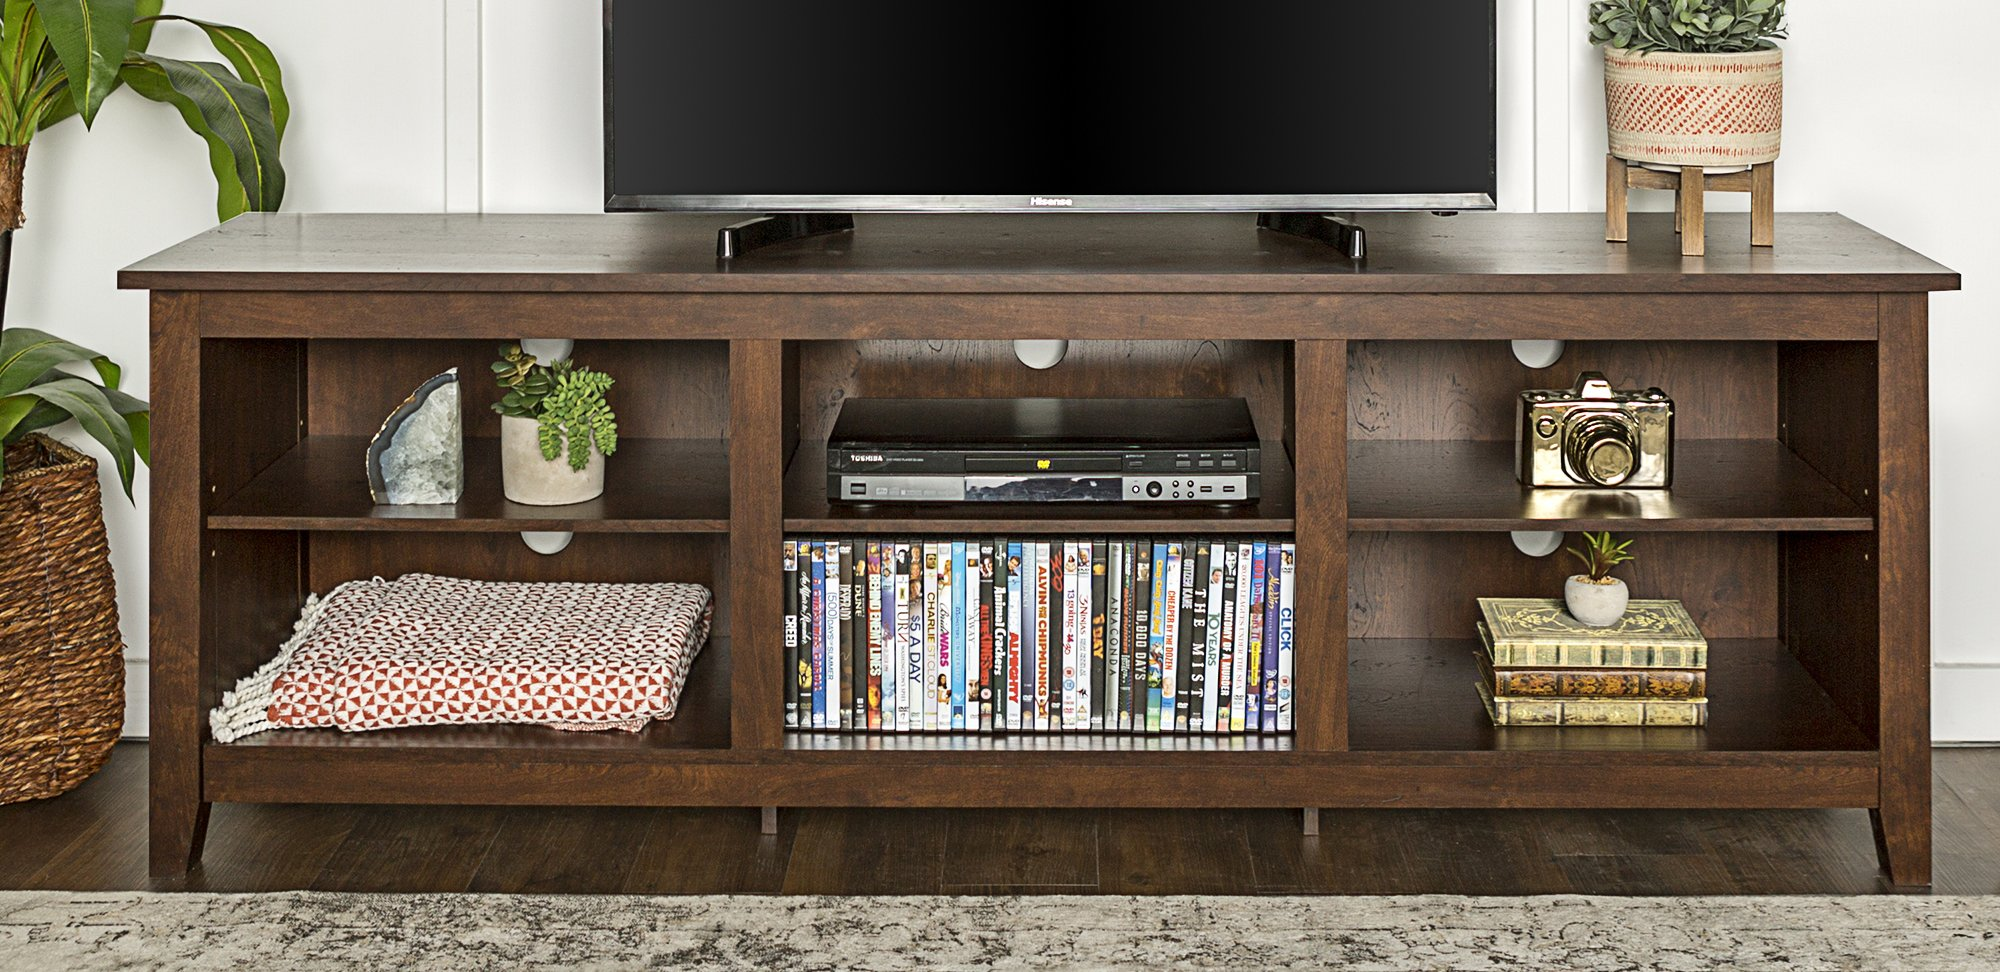 WE Furniture 70'' Wood Media TV Stand Storage Console - Traditional Brown